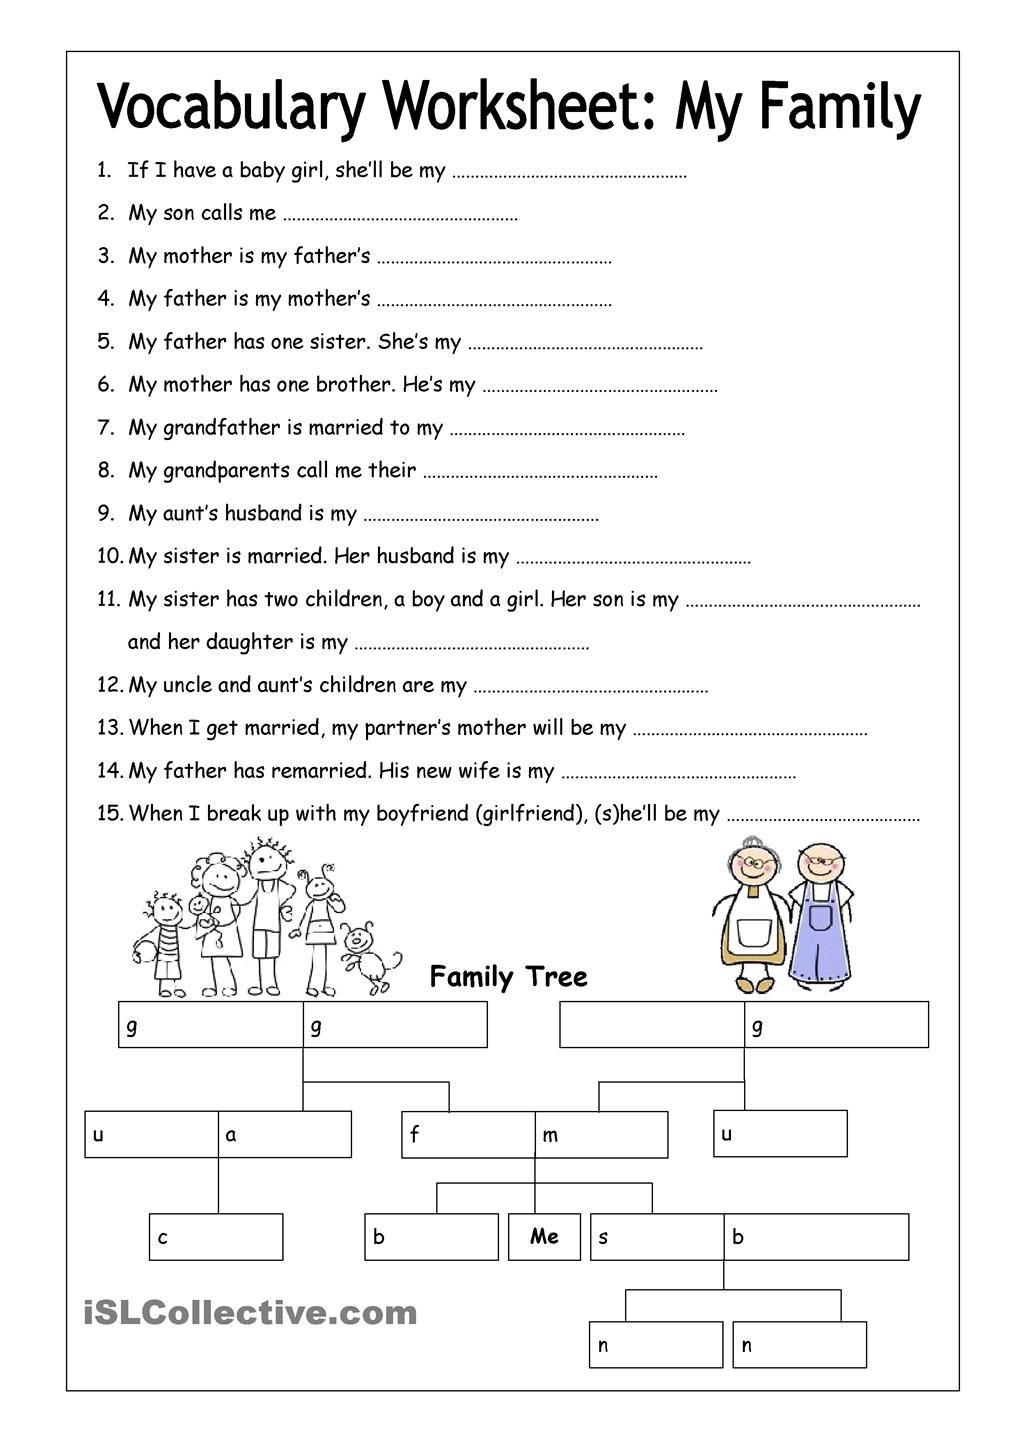 Worksheets Free Printable 6th Grade Vocabulary Worksheets vocabulary worksheet my family medium english 6th grade medium